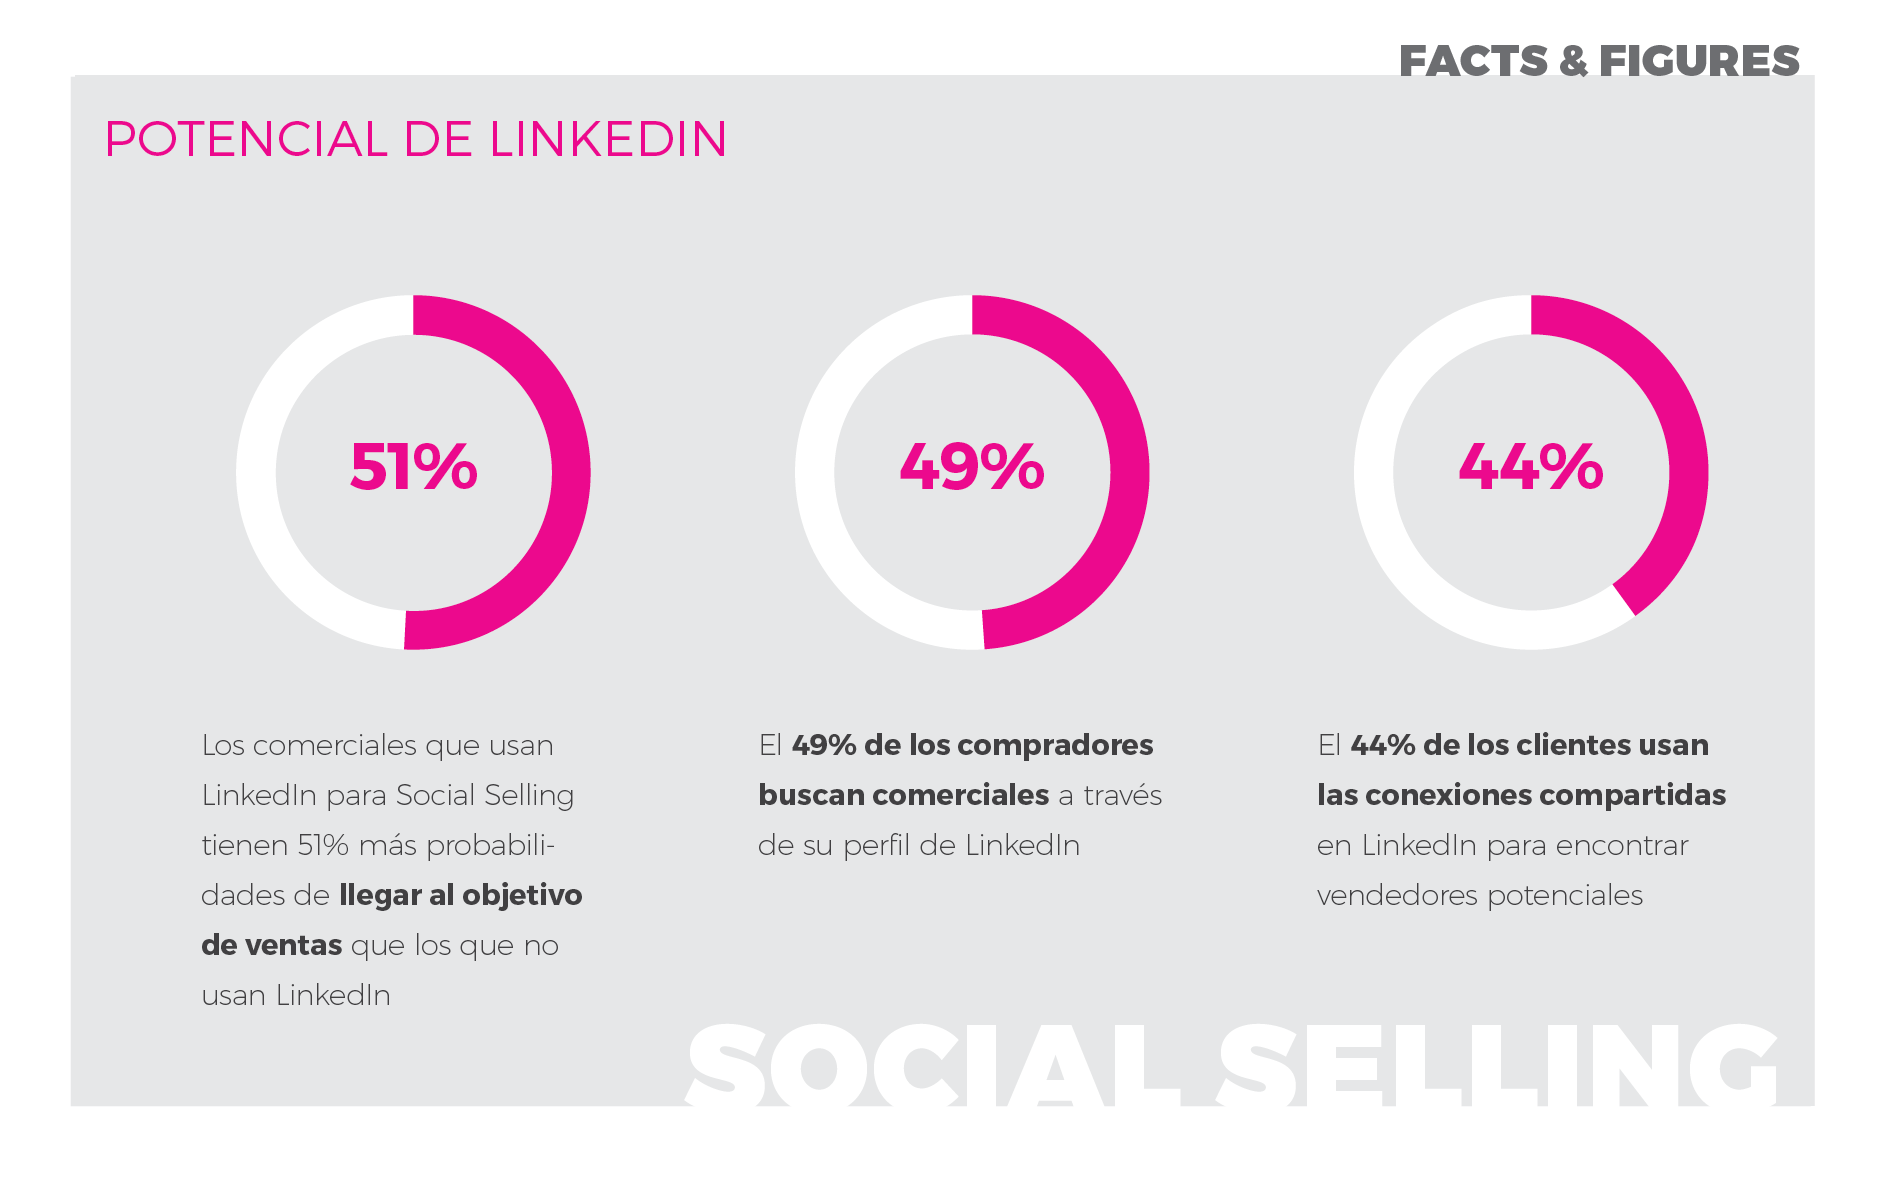 Wide Marketing: te ayudamos a sacar partido al potencial de LinkedIn